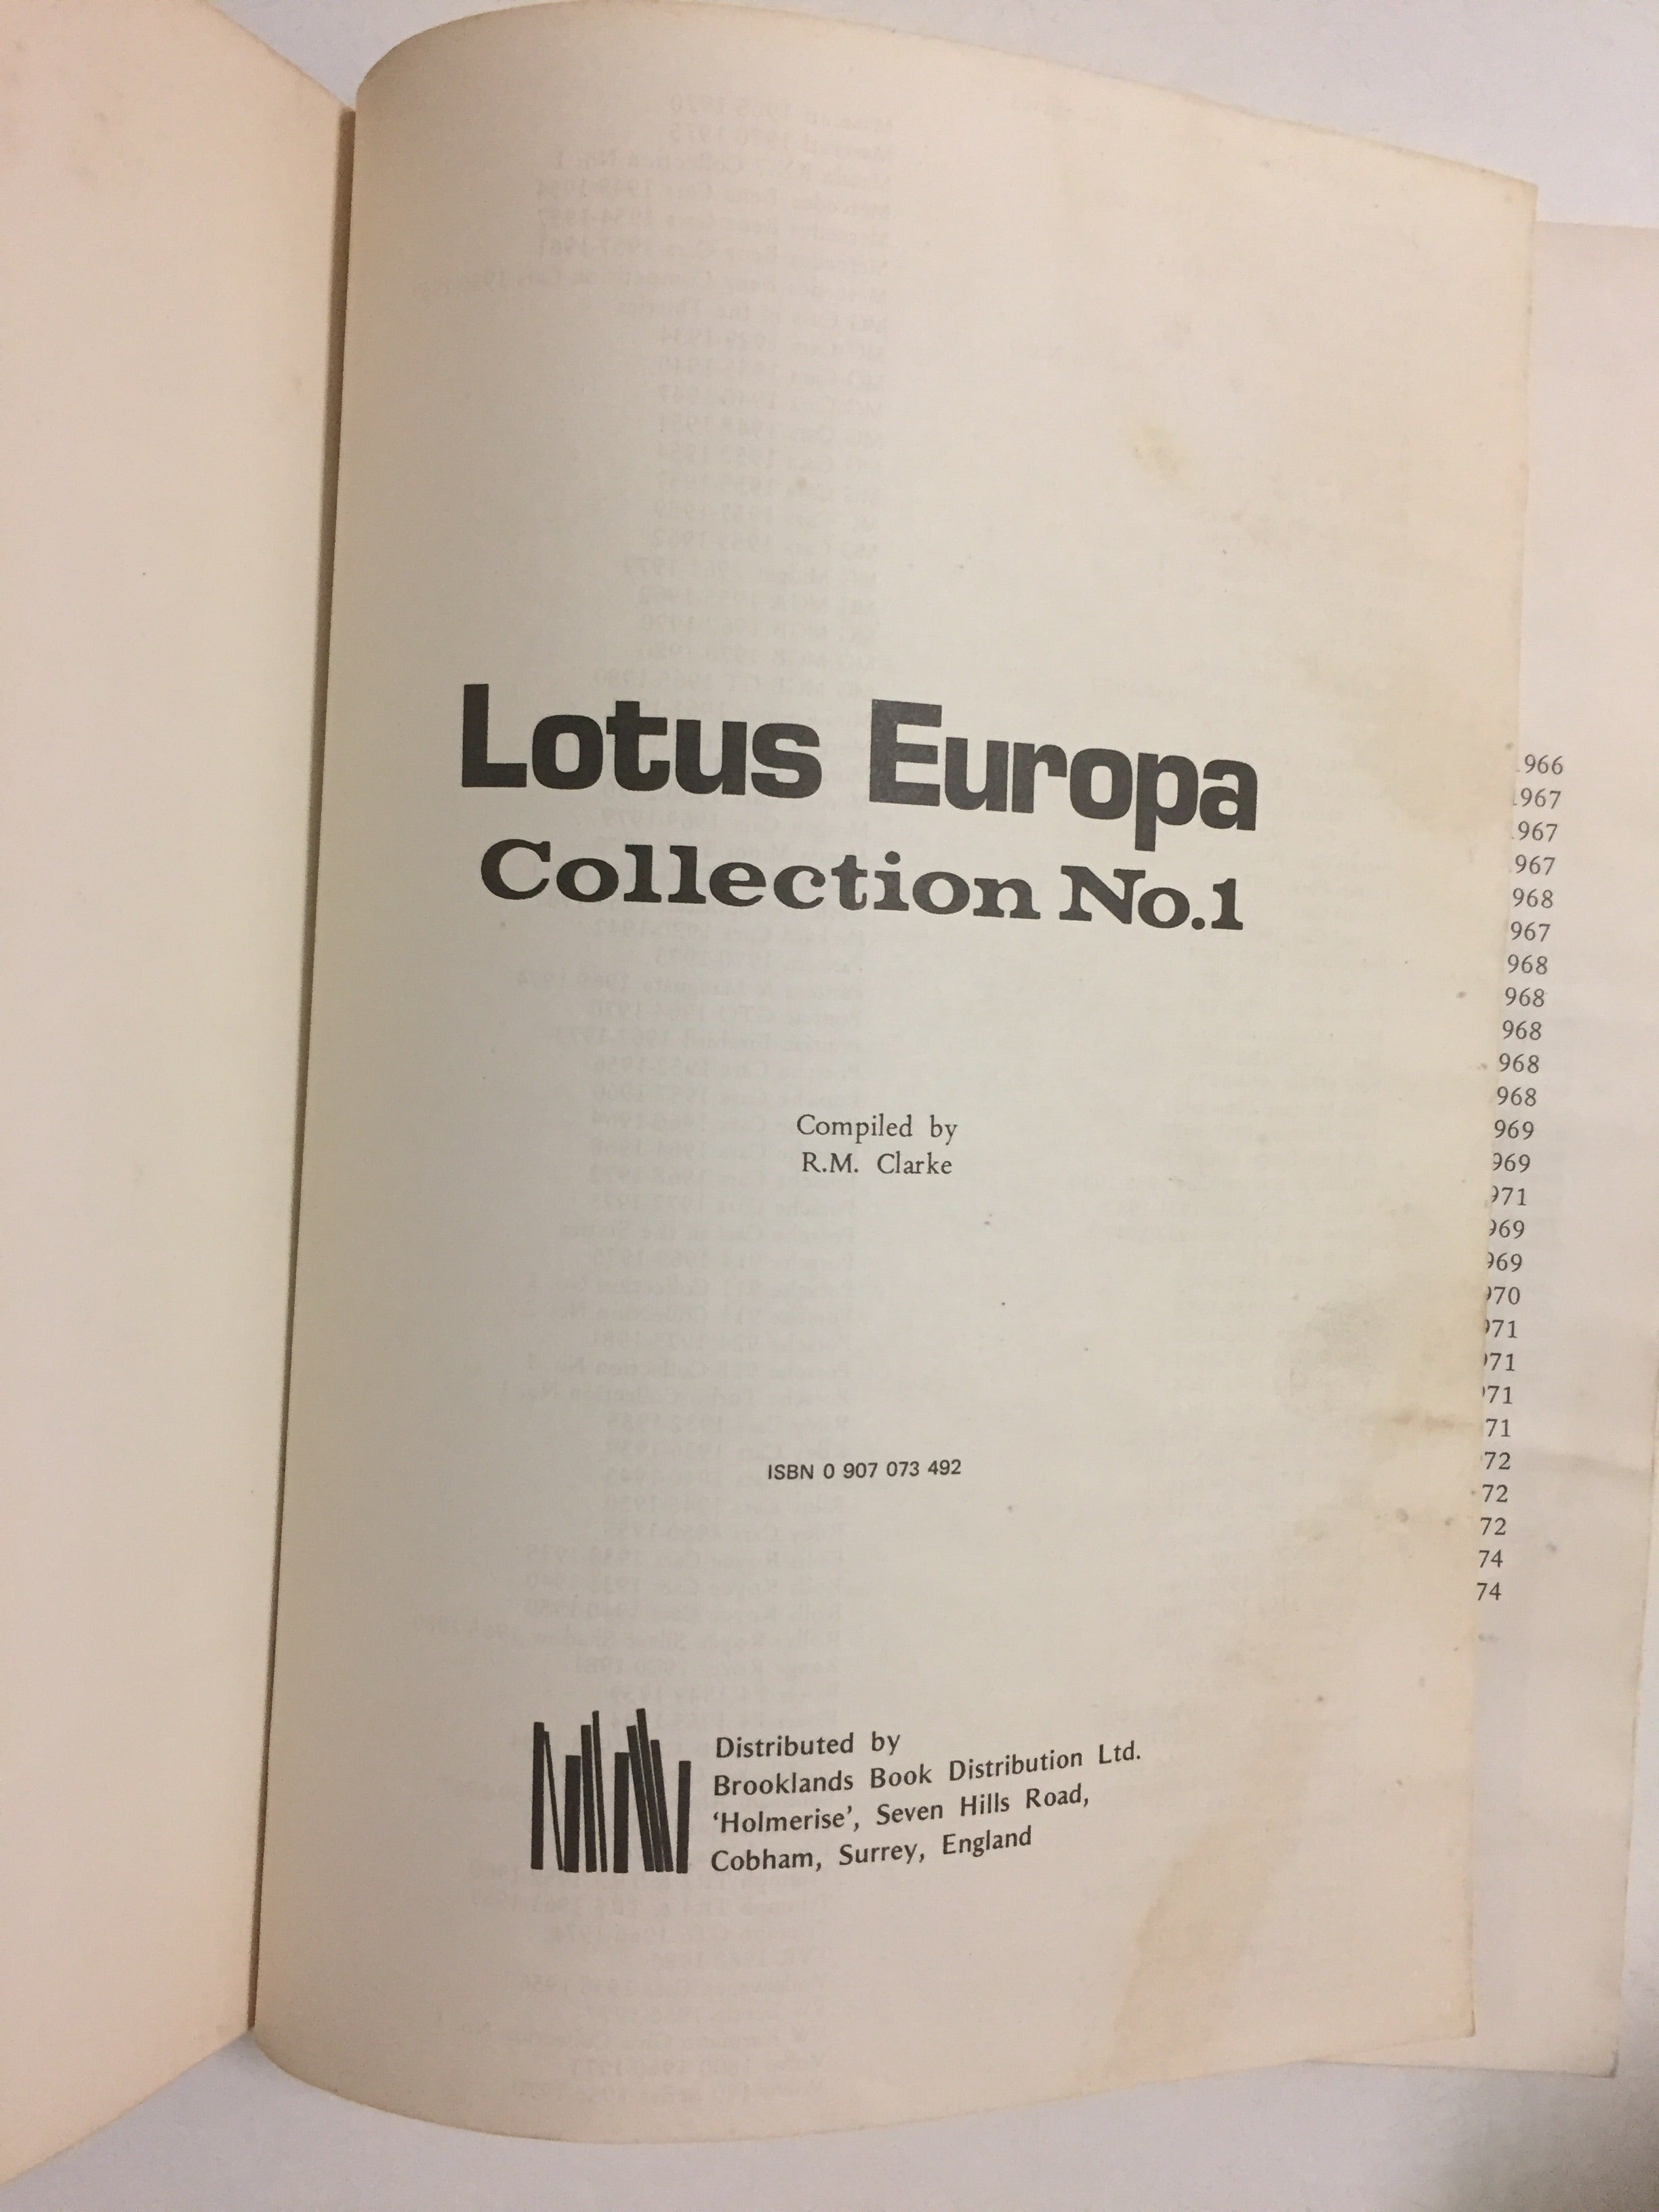 Lotus Europa Collection No. 1 1966-1974 - Slickcatbooks